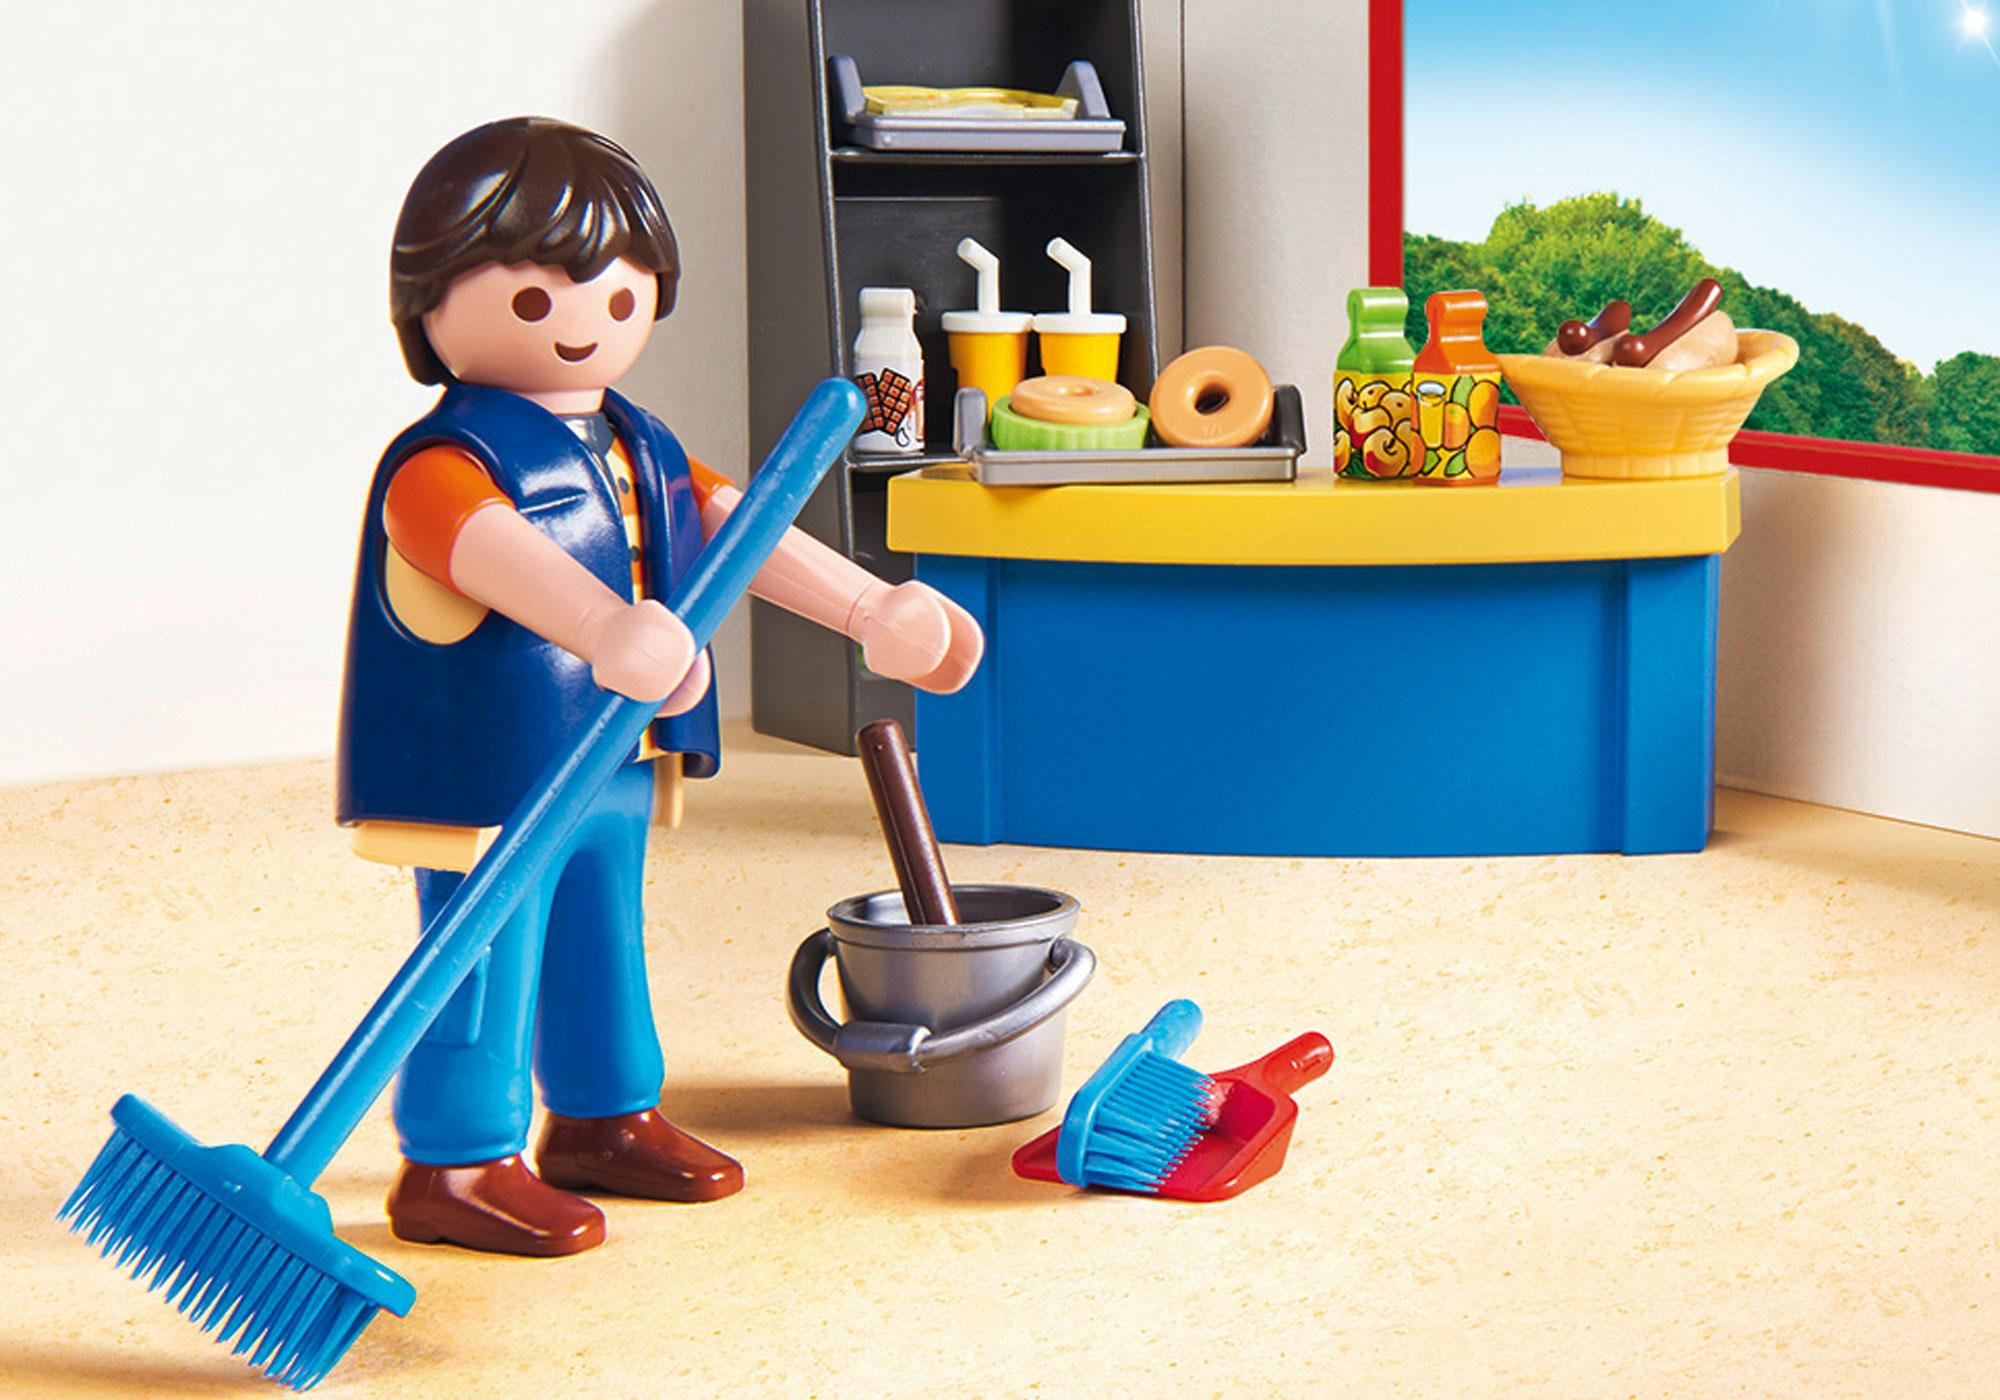 http://media.playmobil.com/i/playmobil/9457_product_extra1/Surveillant avec boutique